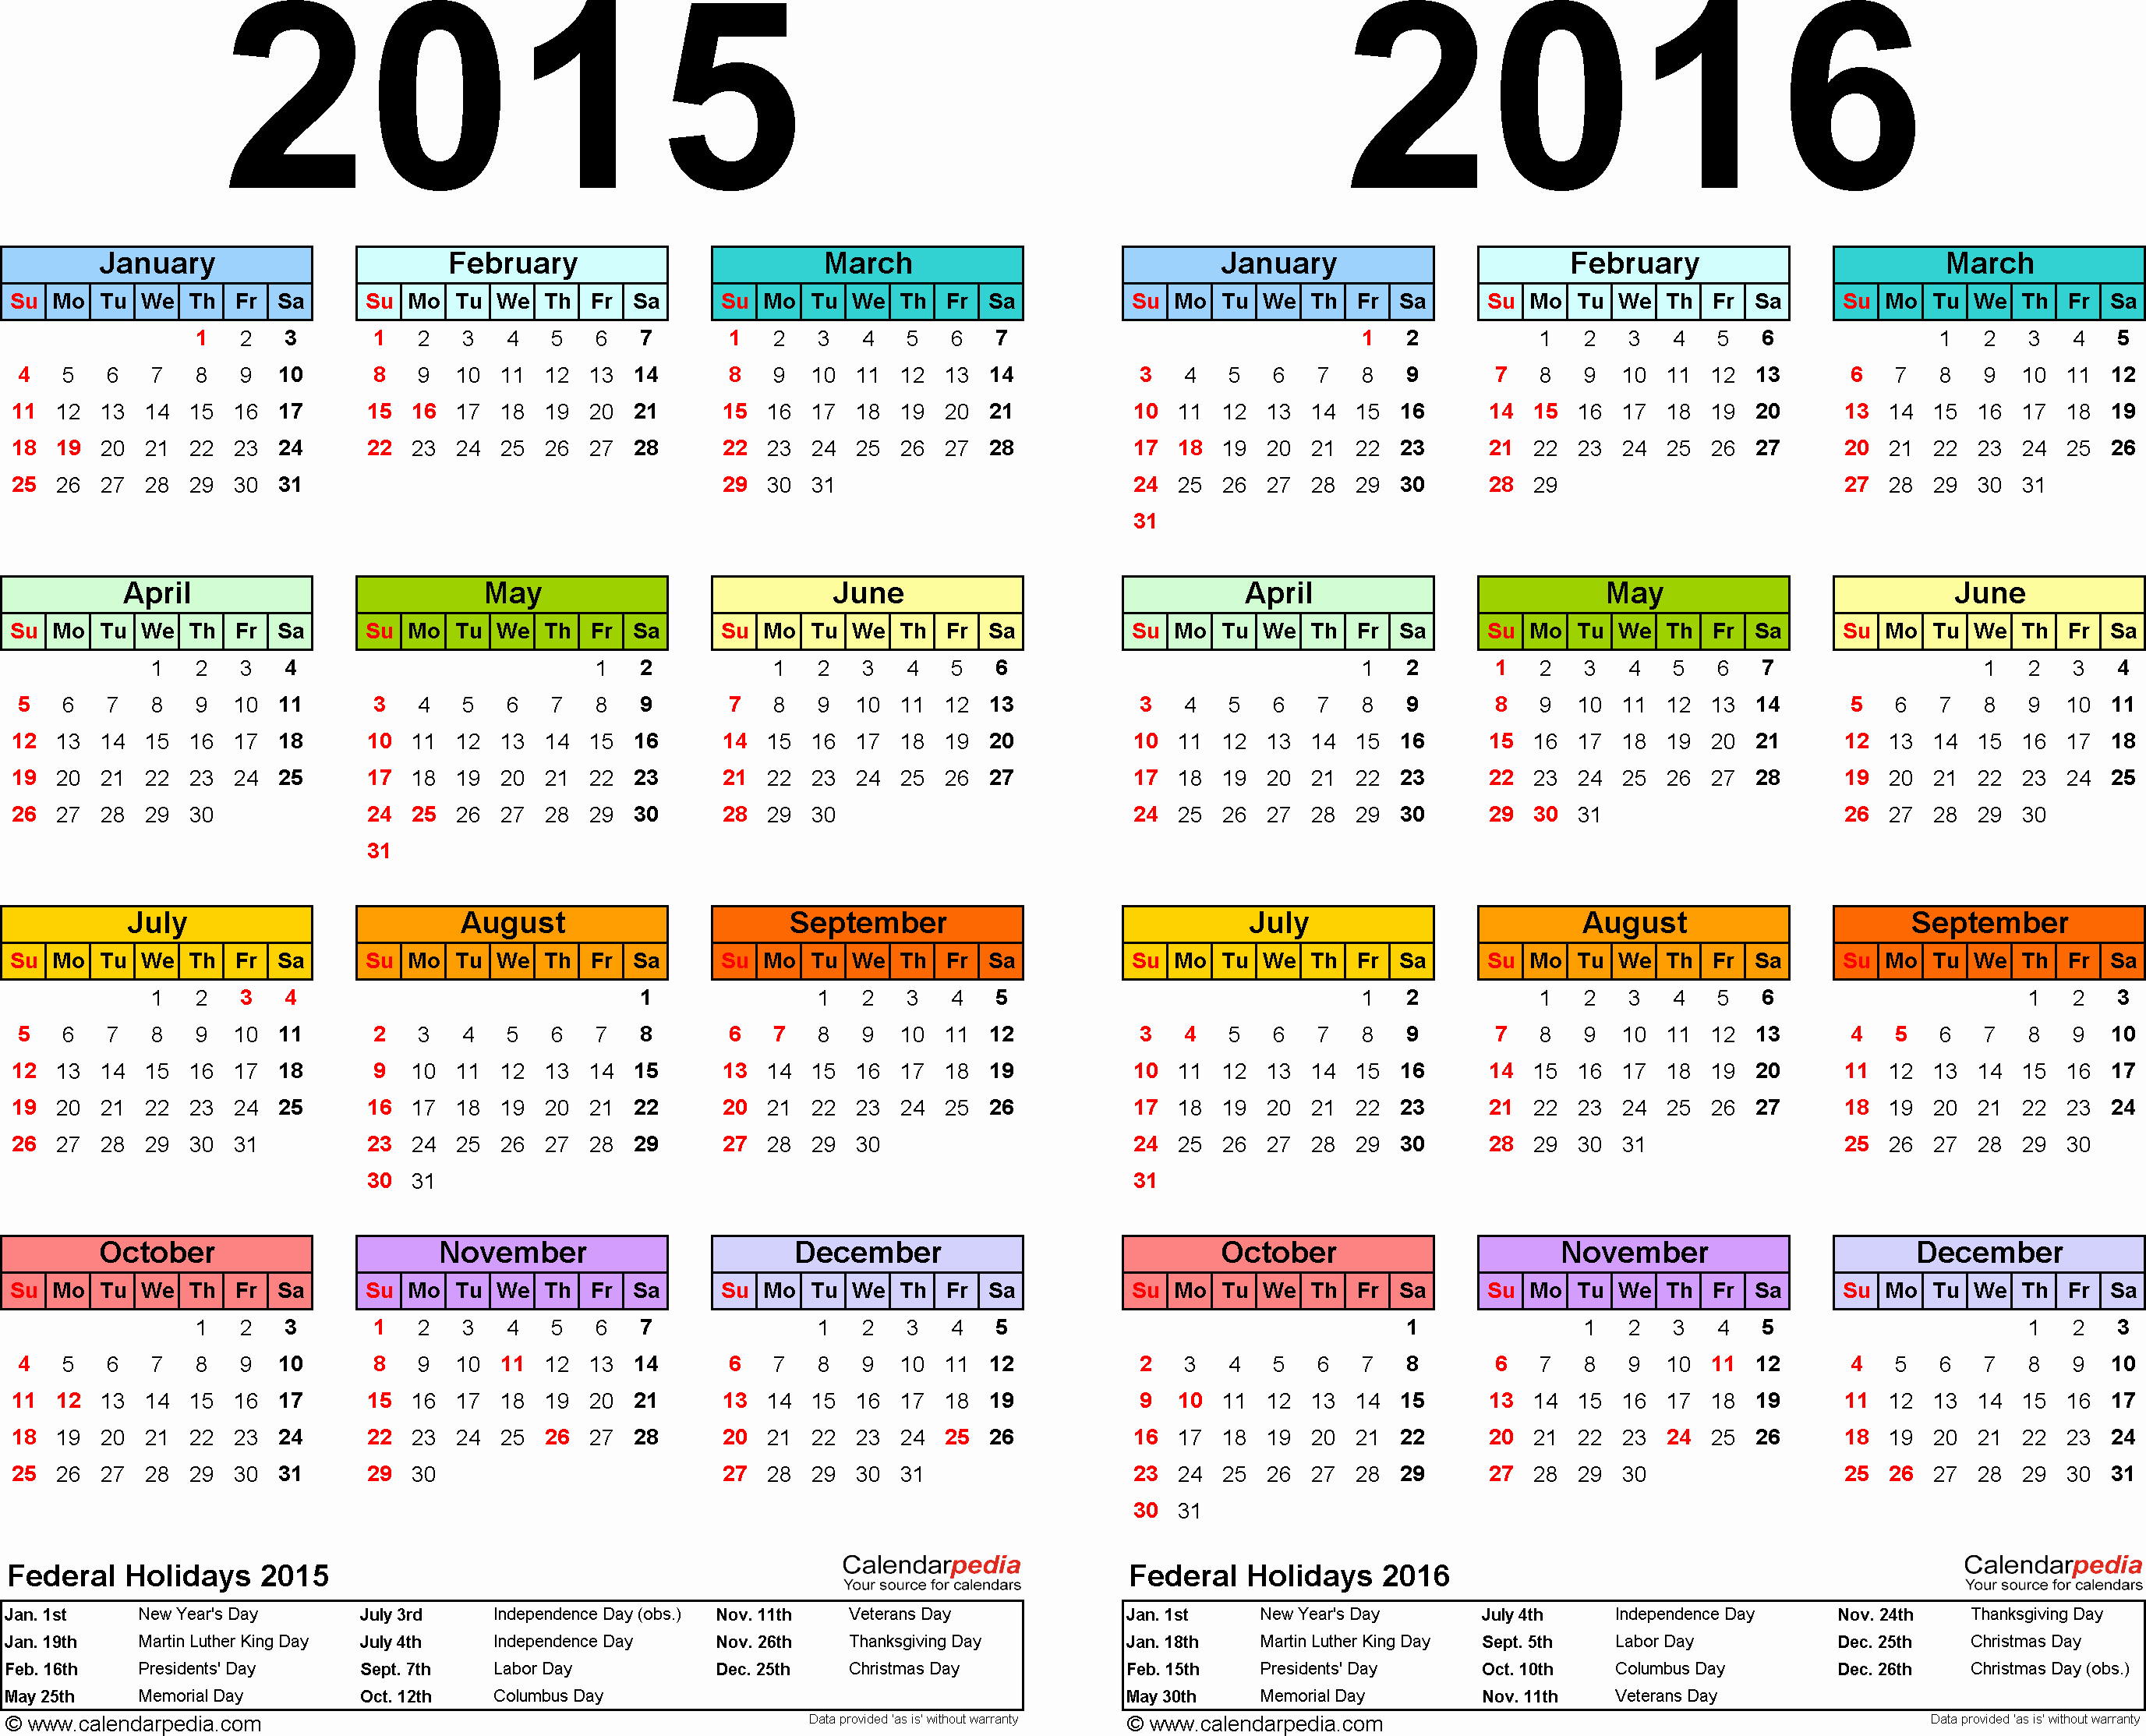 2015 Calendar with Holidays Excel Elegant 2015 2016 Calendar Free Printable Two Year Excel Calendars